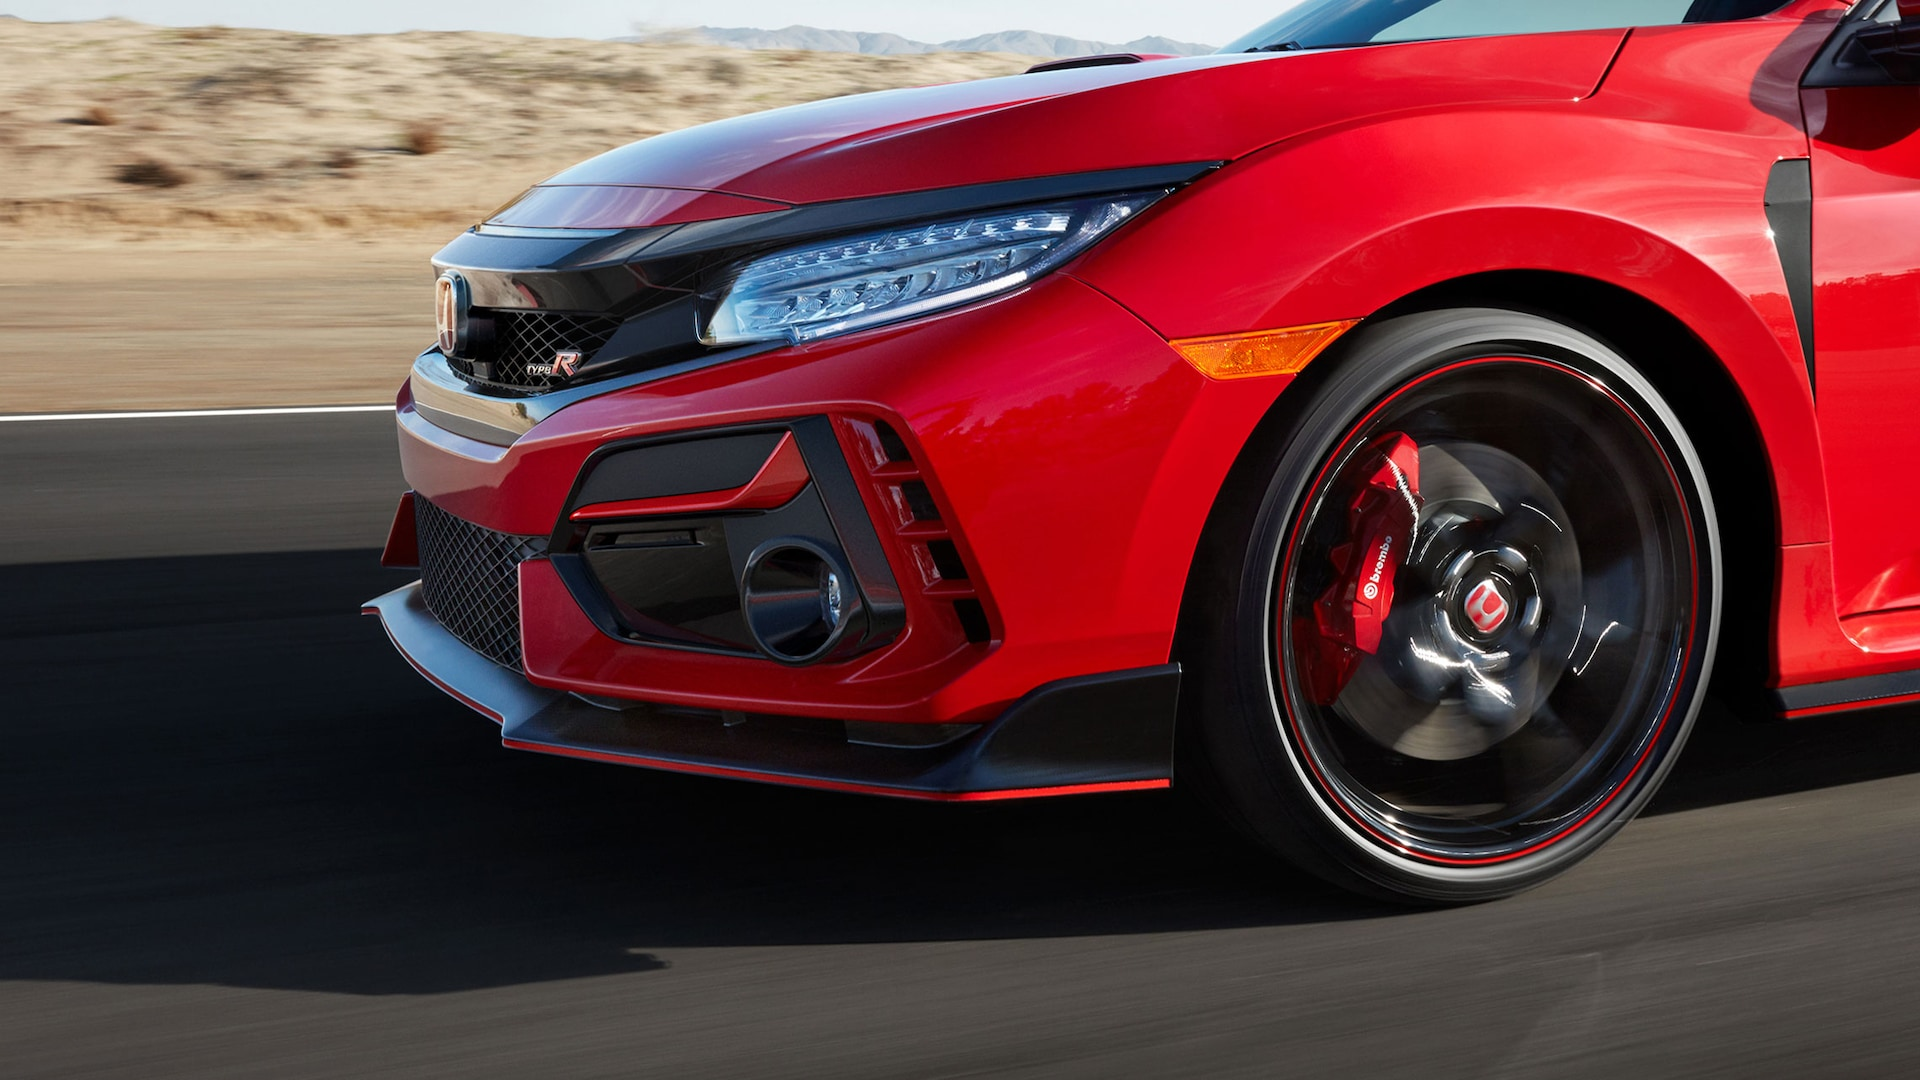 Front driver-side view of the 2021 Honda Civic Type R in Rallye Red, driving on desert racetrack.